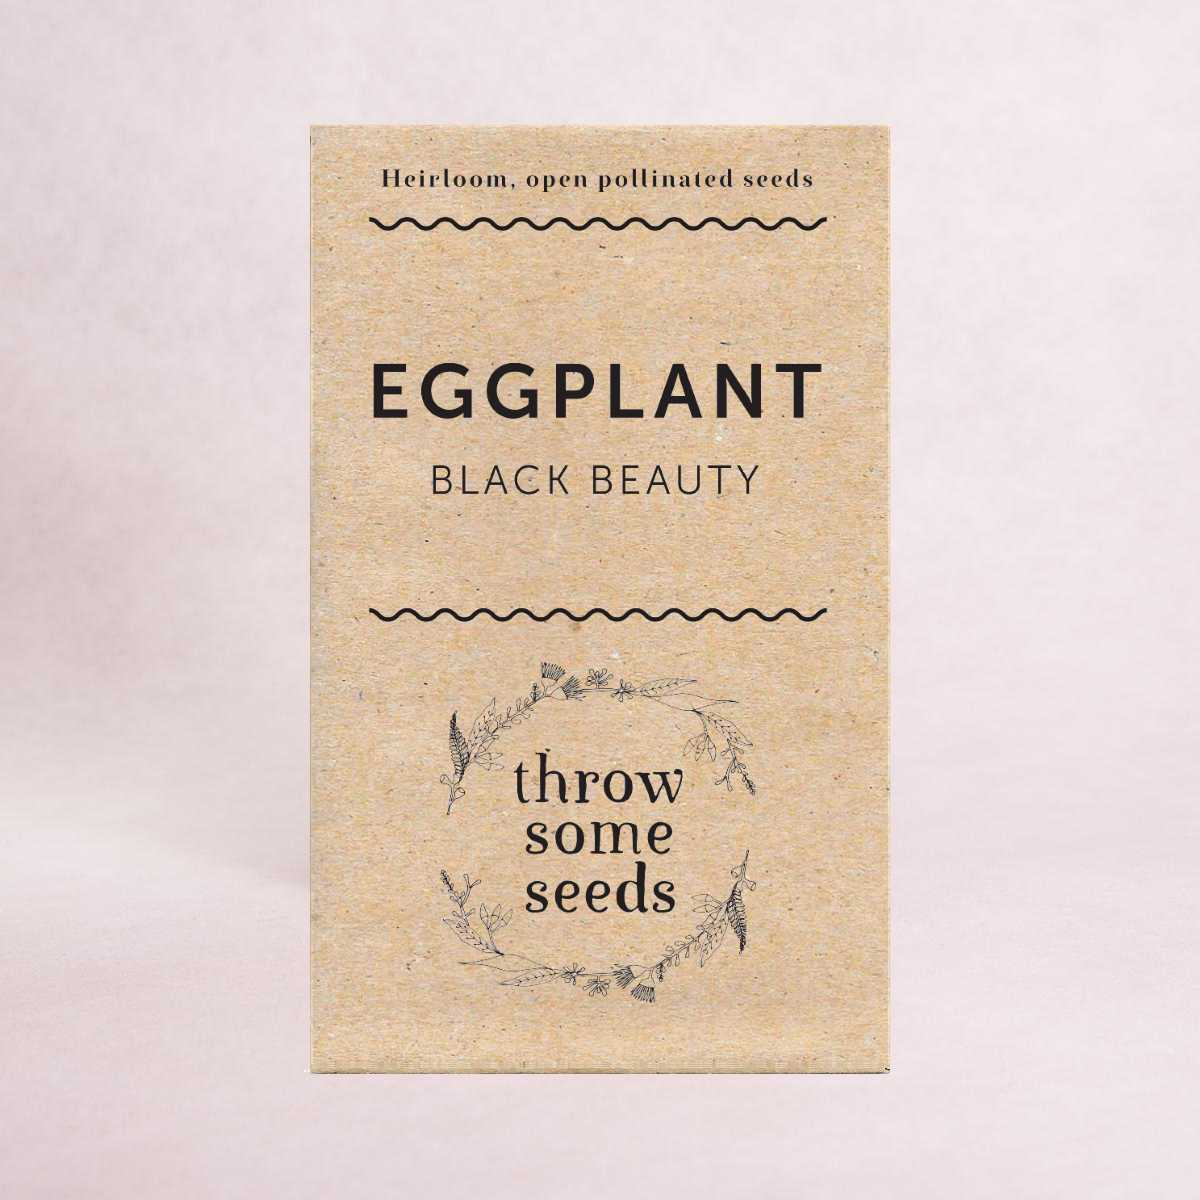 Eggplant (Black Beauty) Seeds - Seeds - Throw Some Seeds - Australian gardening gifts and eco products online!